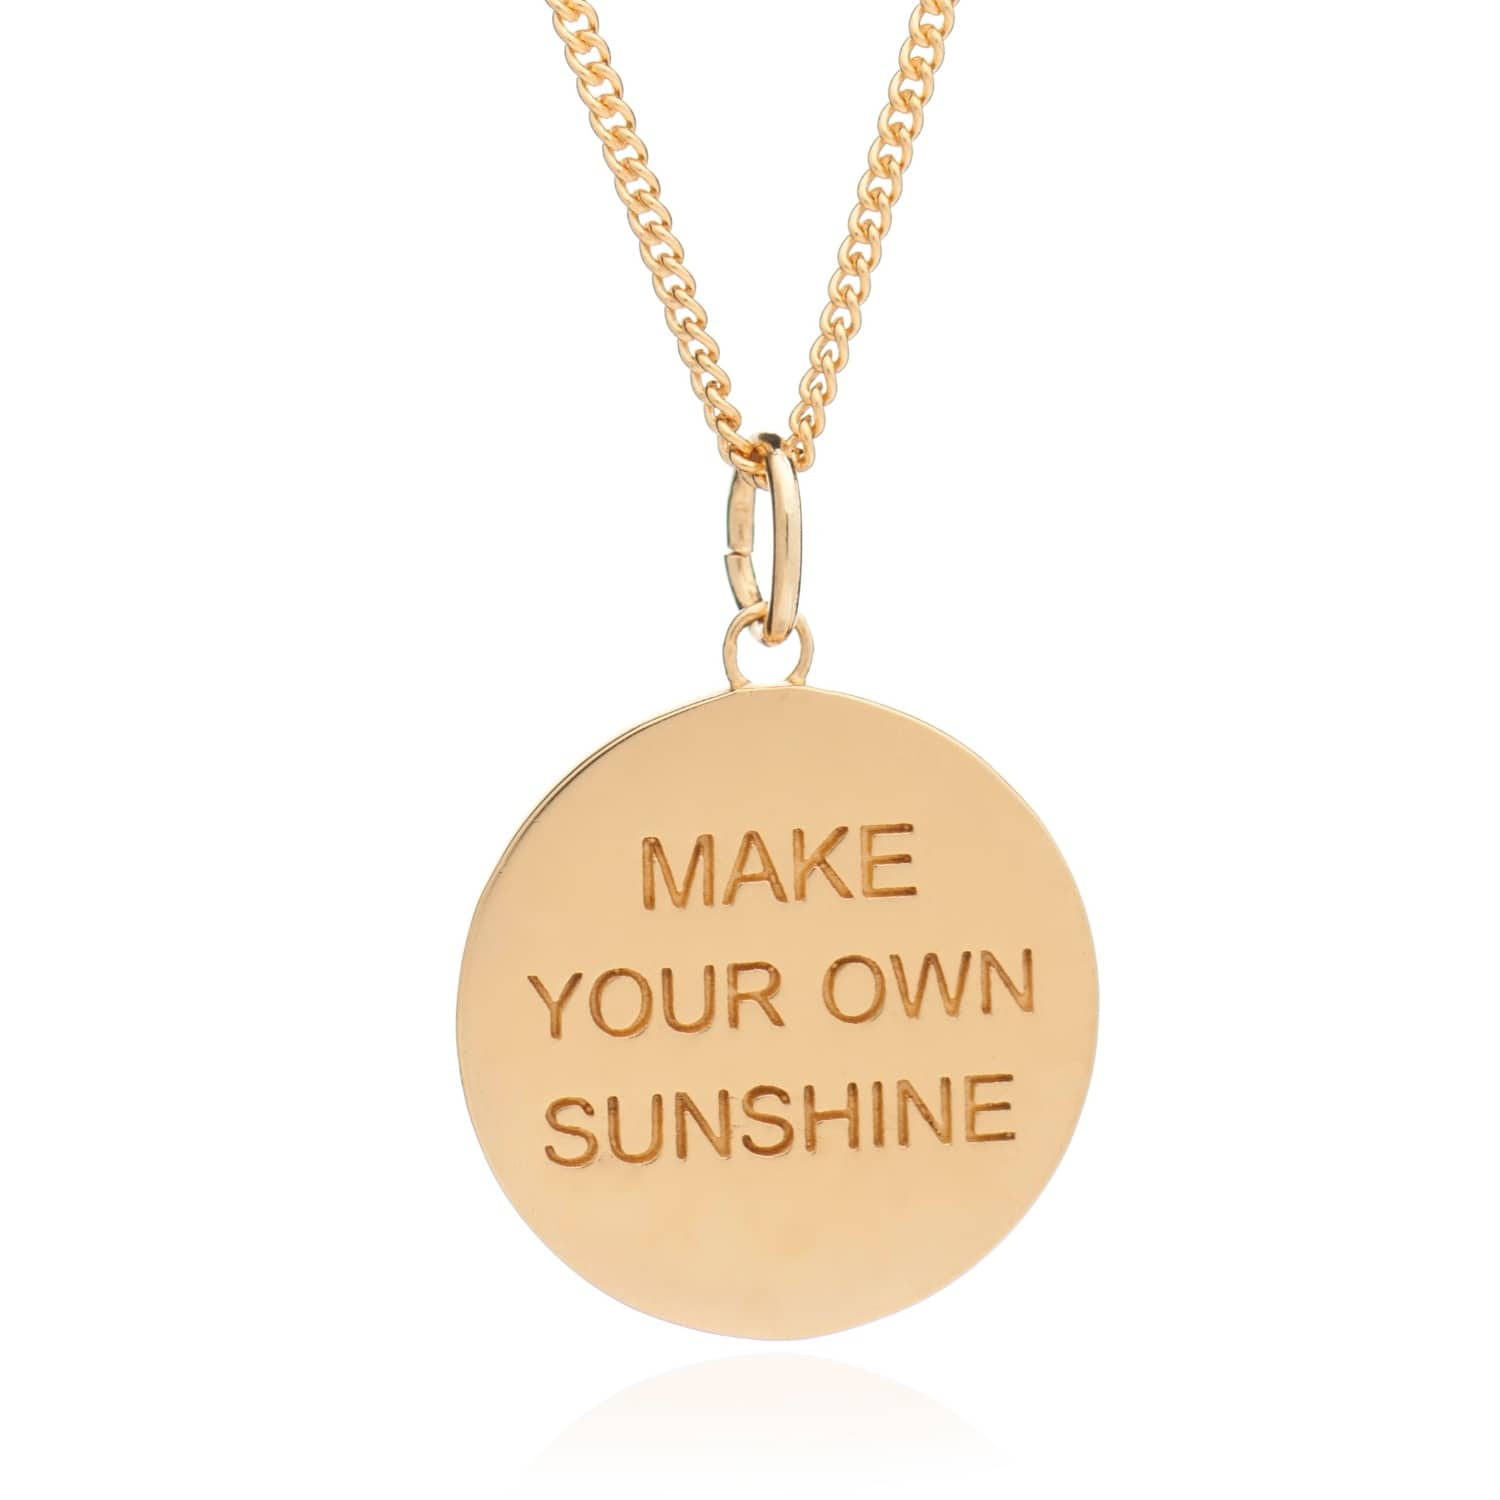 Make your own sunshine disc necklace gold rachel jackson london make your own sunshine disc necklace gold image aloadofball Gallery